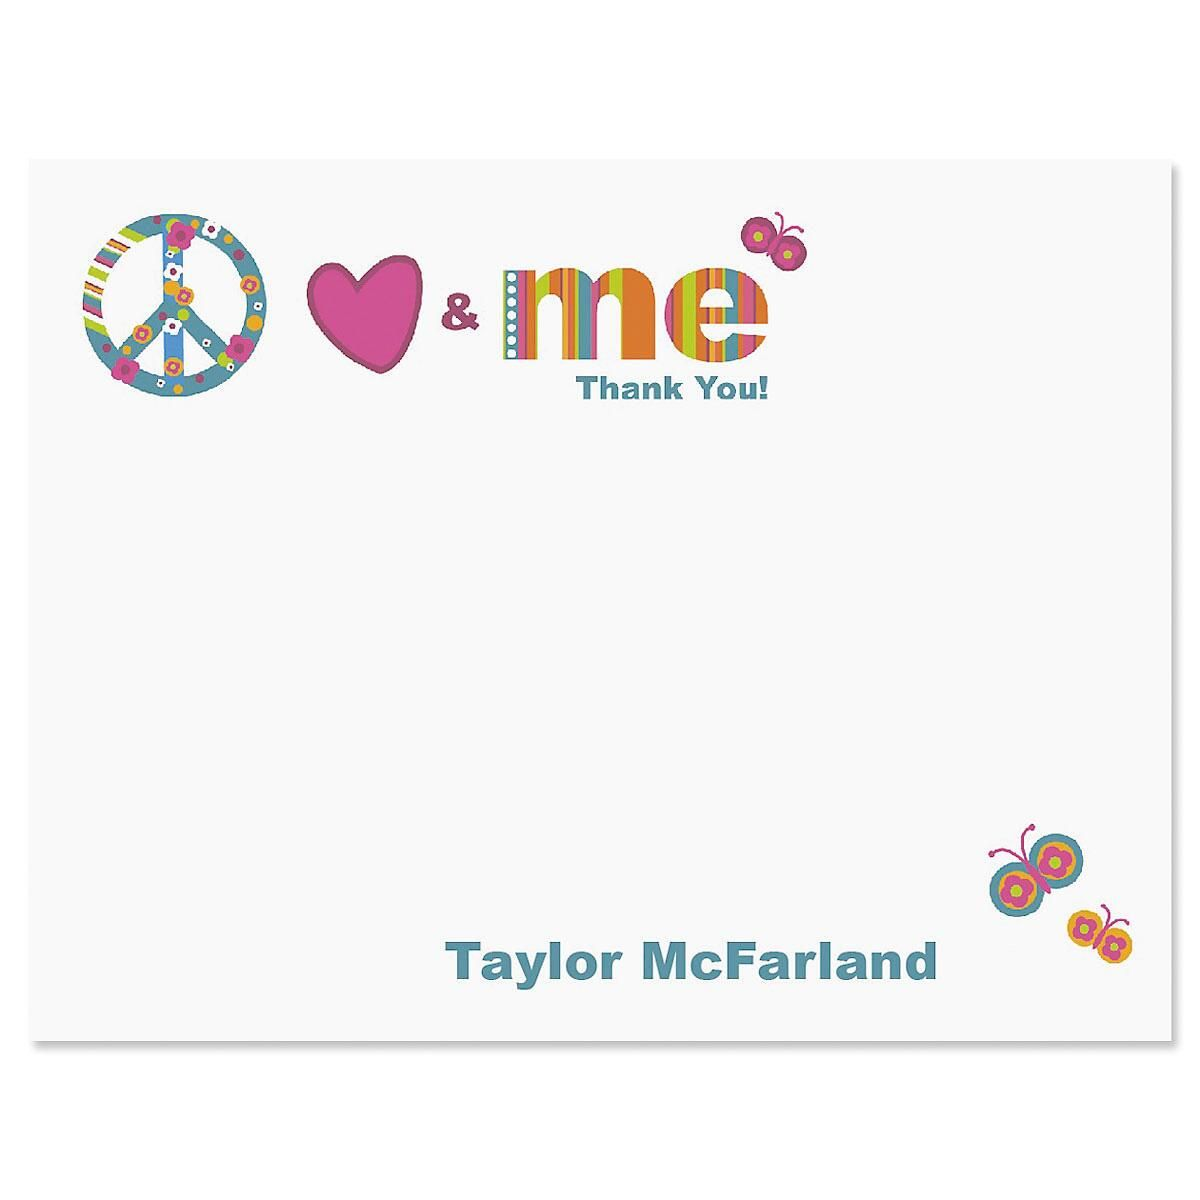 Peace, Love & Me Thank You Cards